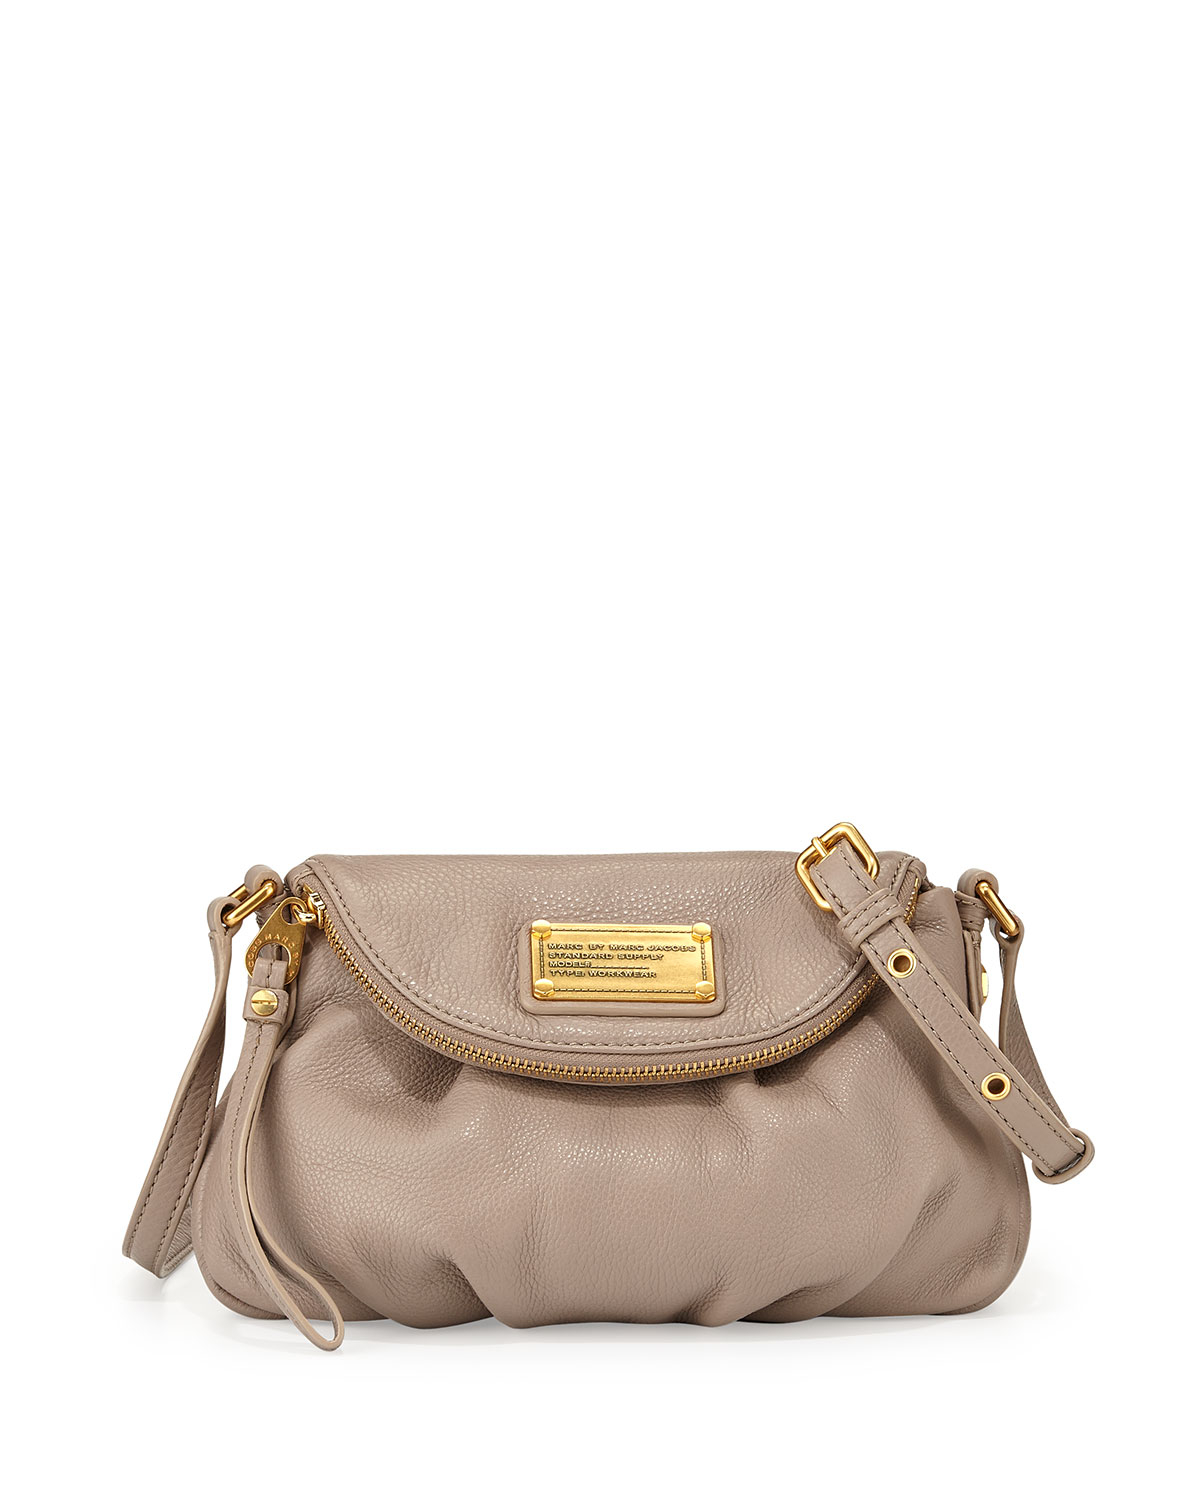 lyst marc by marc jacobs classic q mini natasha flap crossbody bag cement in gray. Black Bedroom Furniture Sets. Home Design Ideas